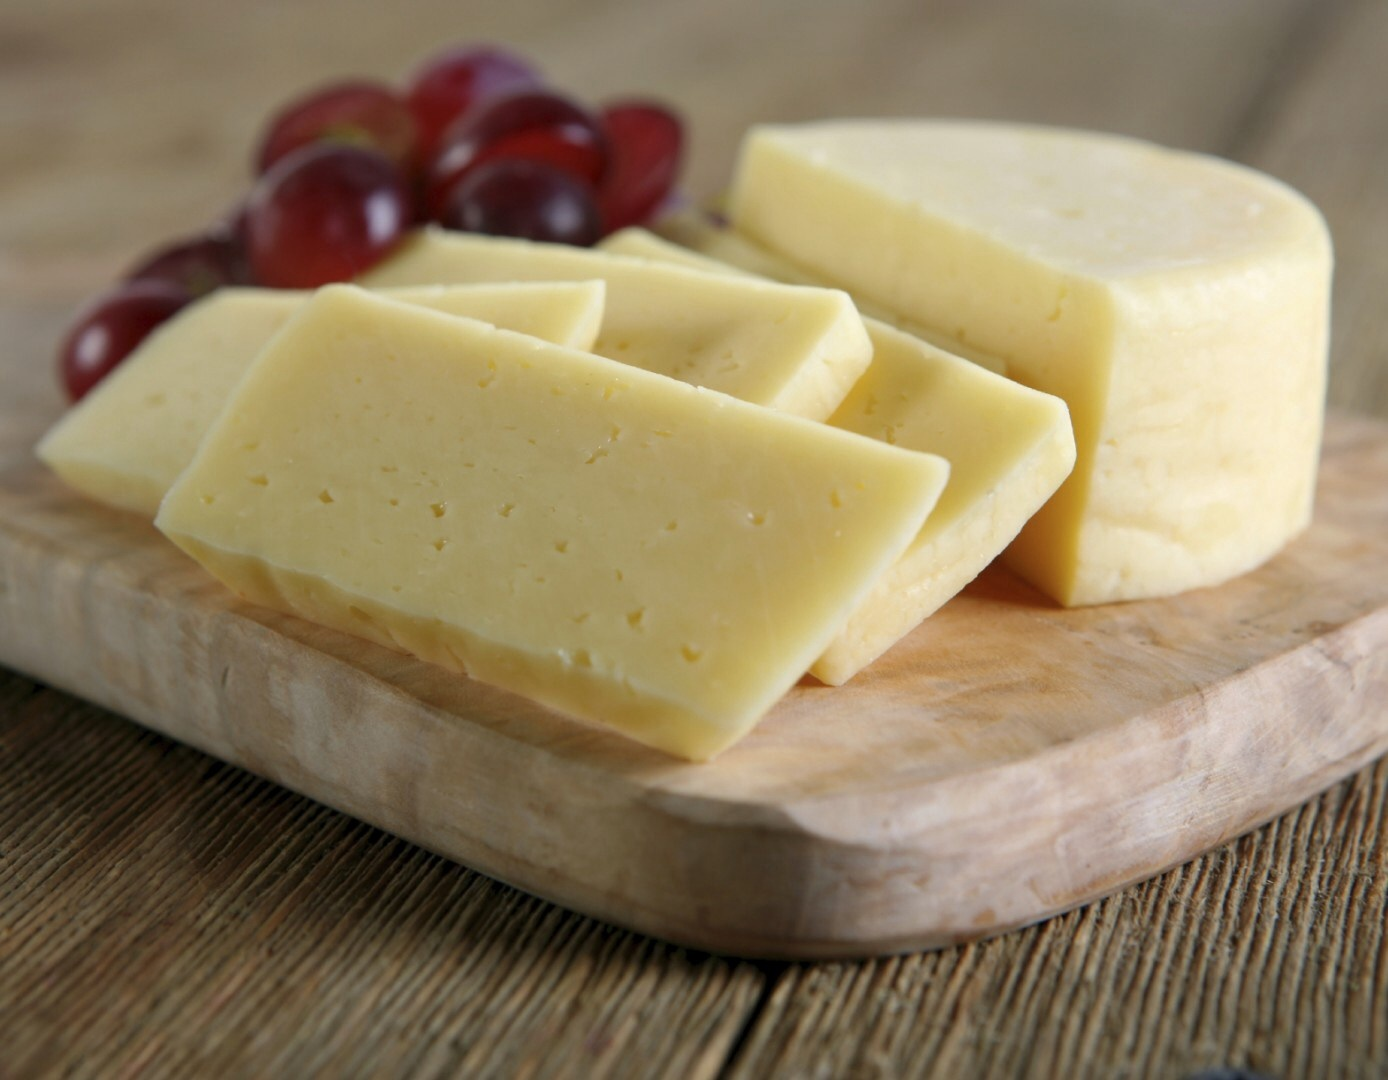 How to Make Gouda Cheese at Home: Learn the step-by-step Pictures of gouda cheese